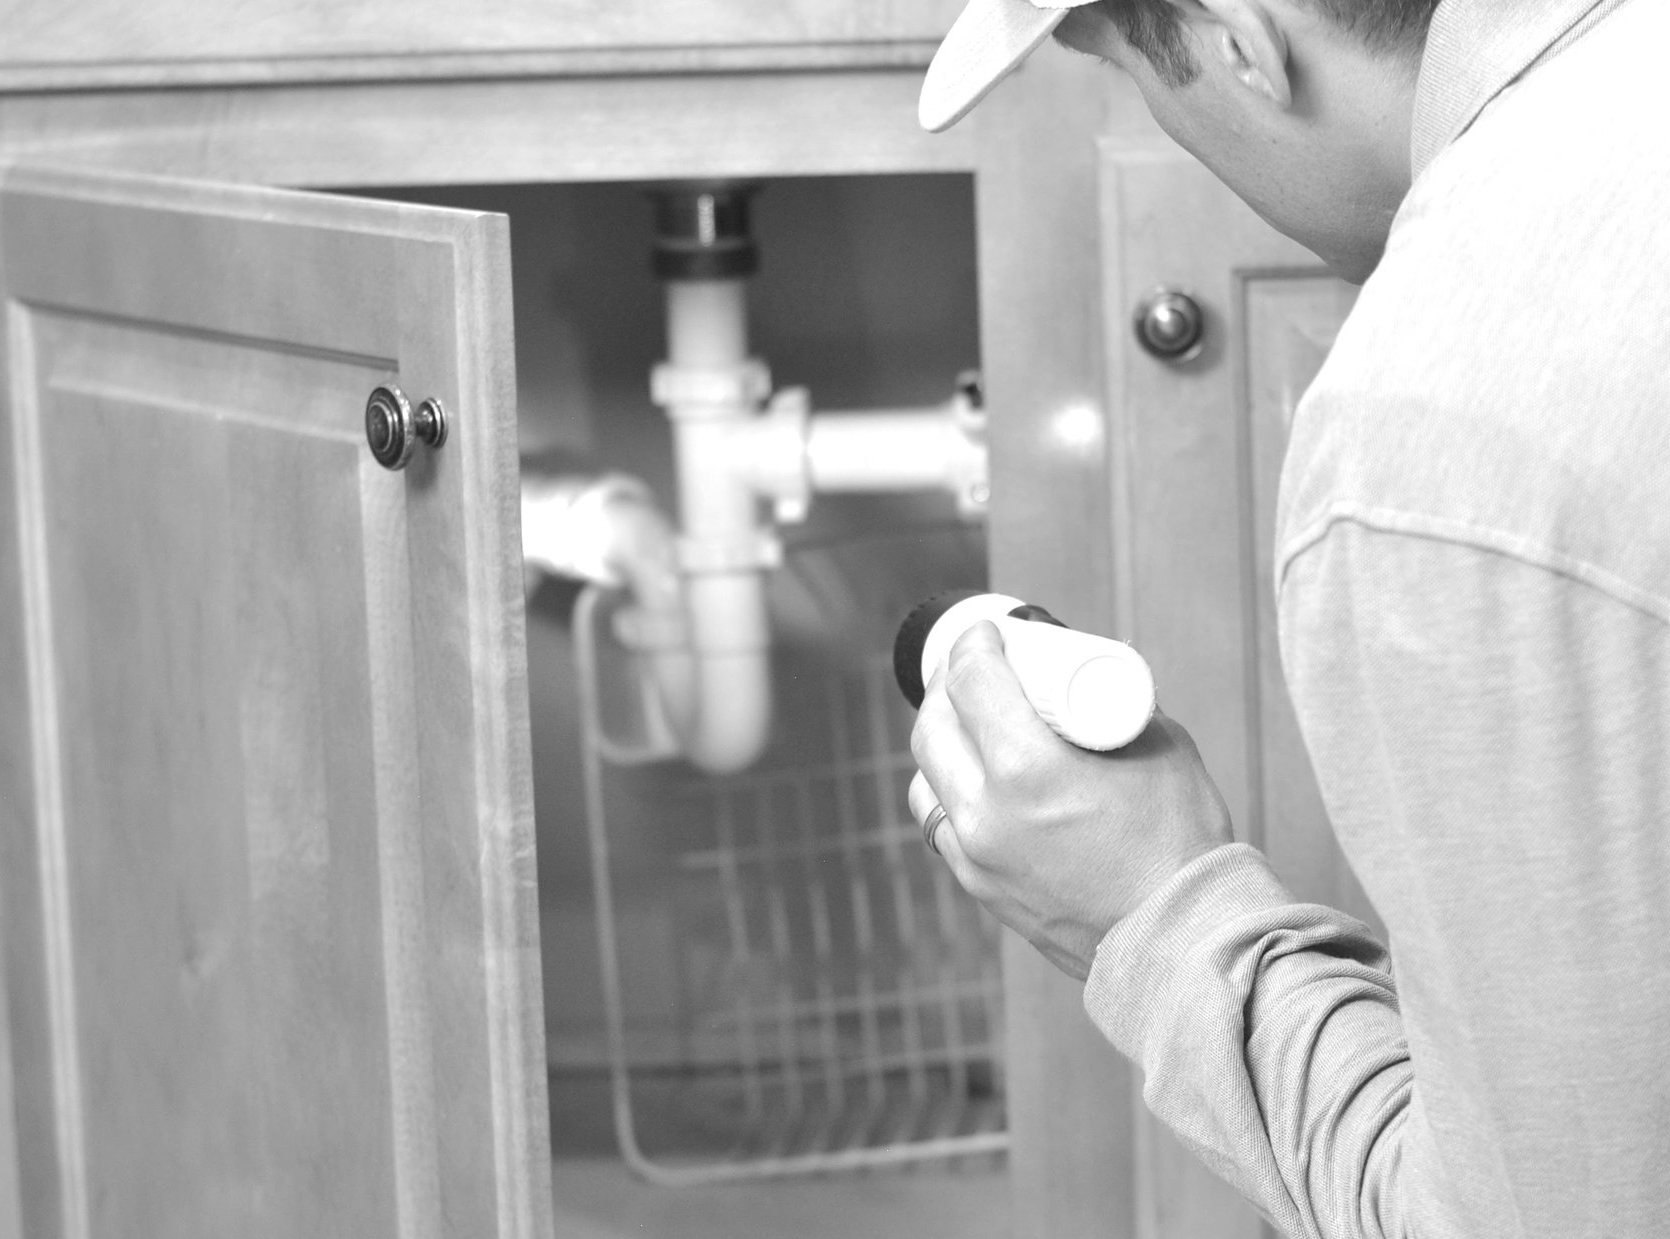 Experience - Our Regional Director has been in the Louisiana pest industry for over 29 years and maintains multiple licenses with the Department of Agriculture.As a local resident, he understand the pests and the best way to keep your house bug free.